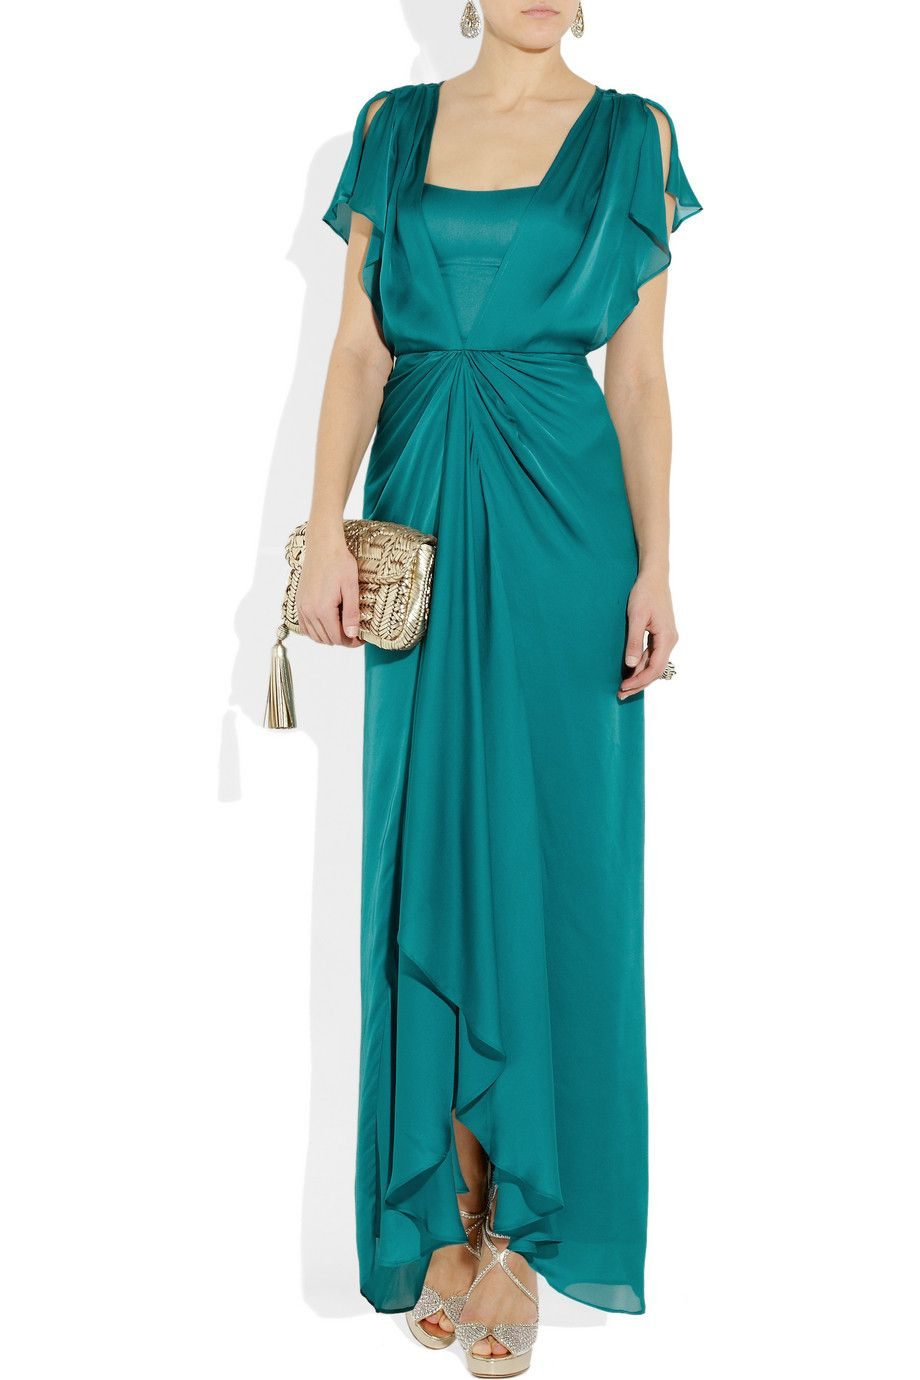 Mother of the Bride Dress Idea: Venus Waterfall Teal Silk Dress by ...